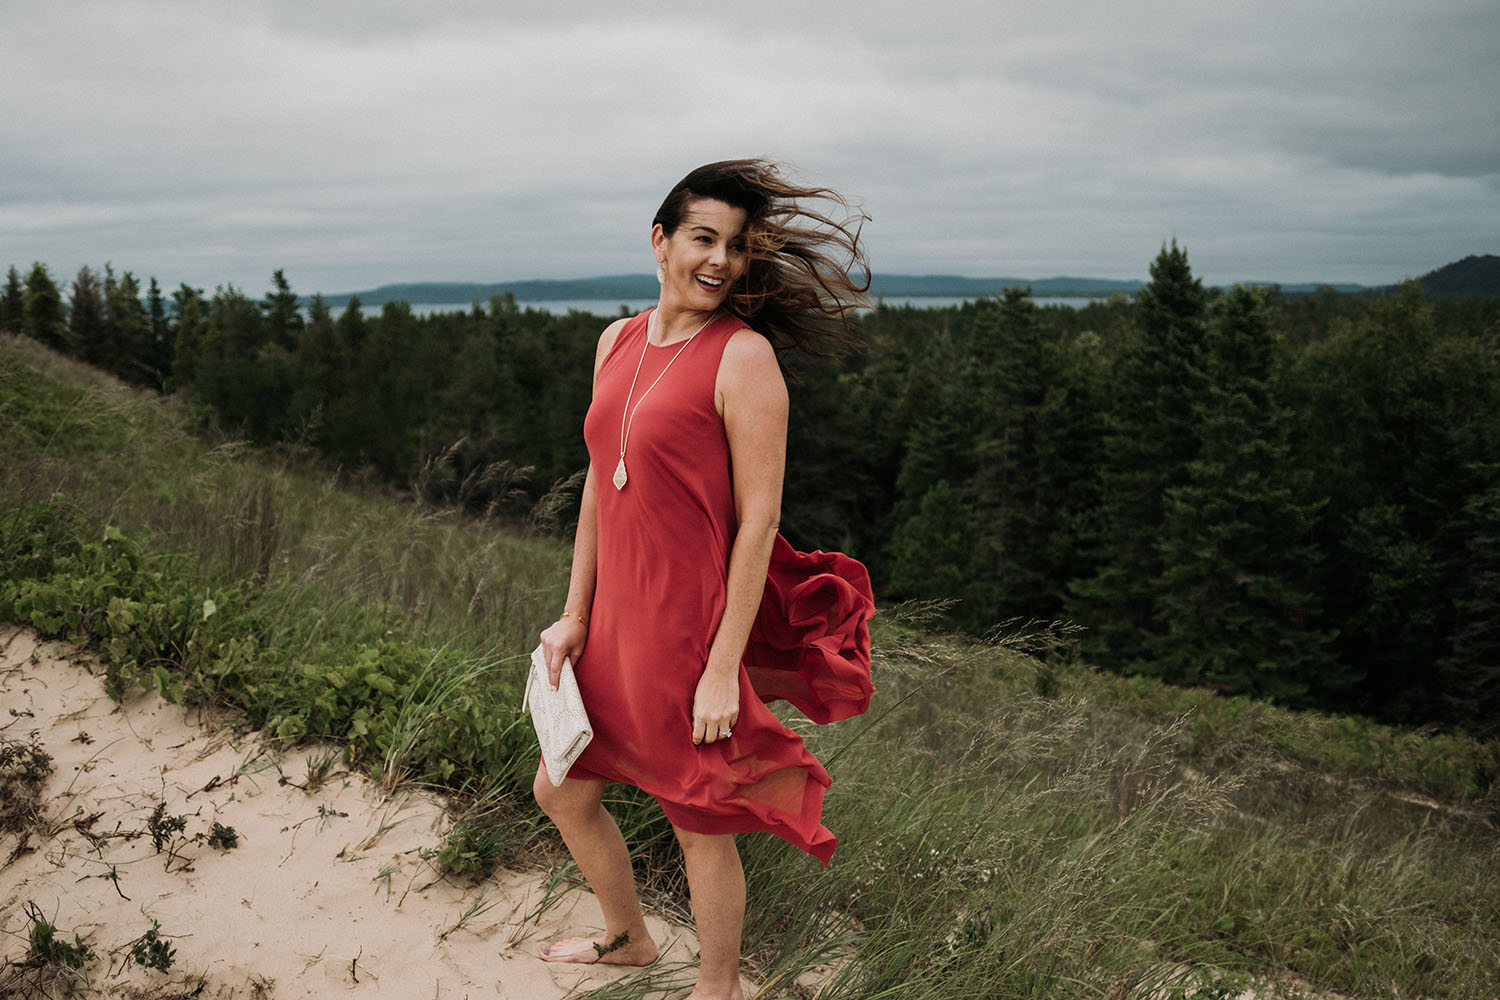 Traverse City Fashion Photographer | Jenny with 'Her Best Always'